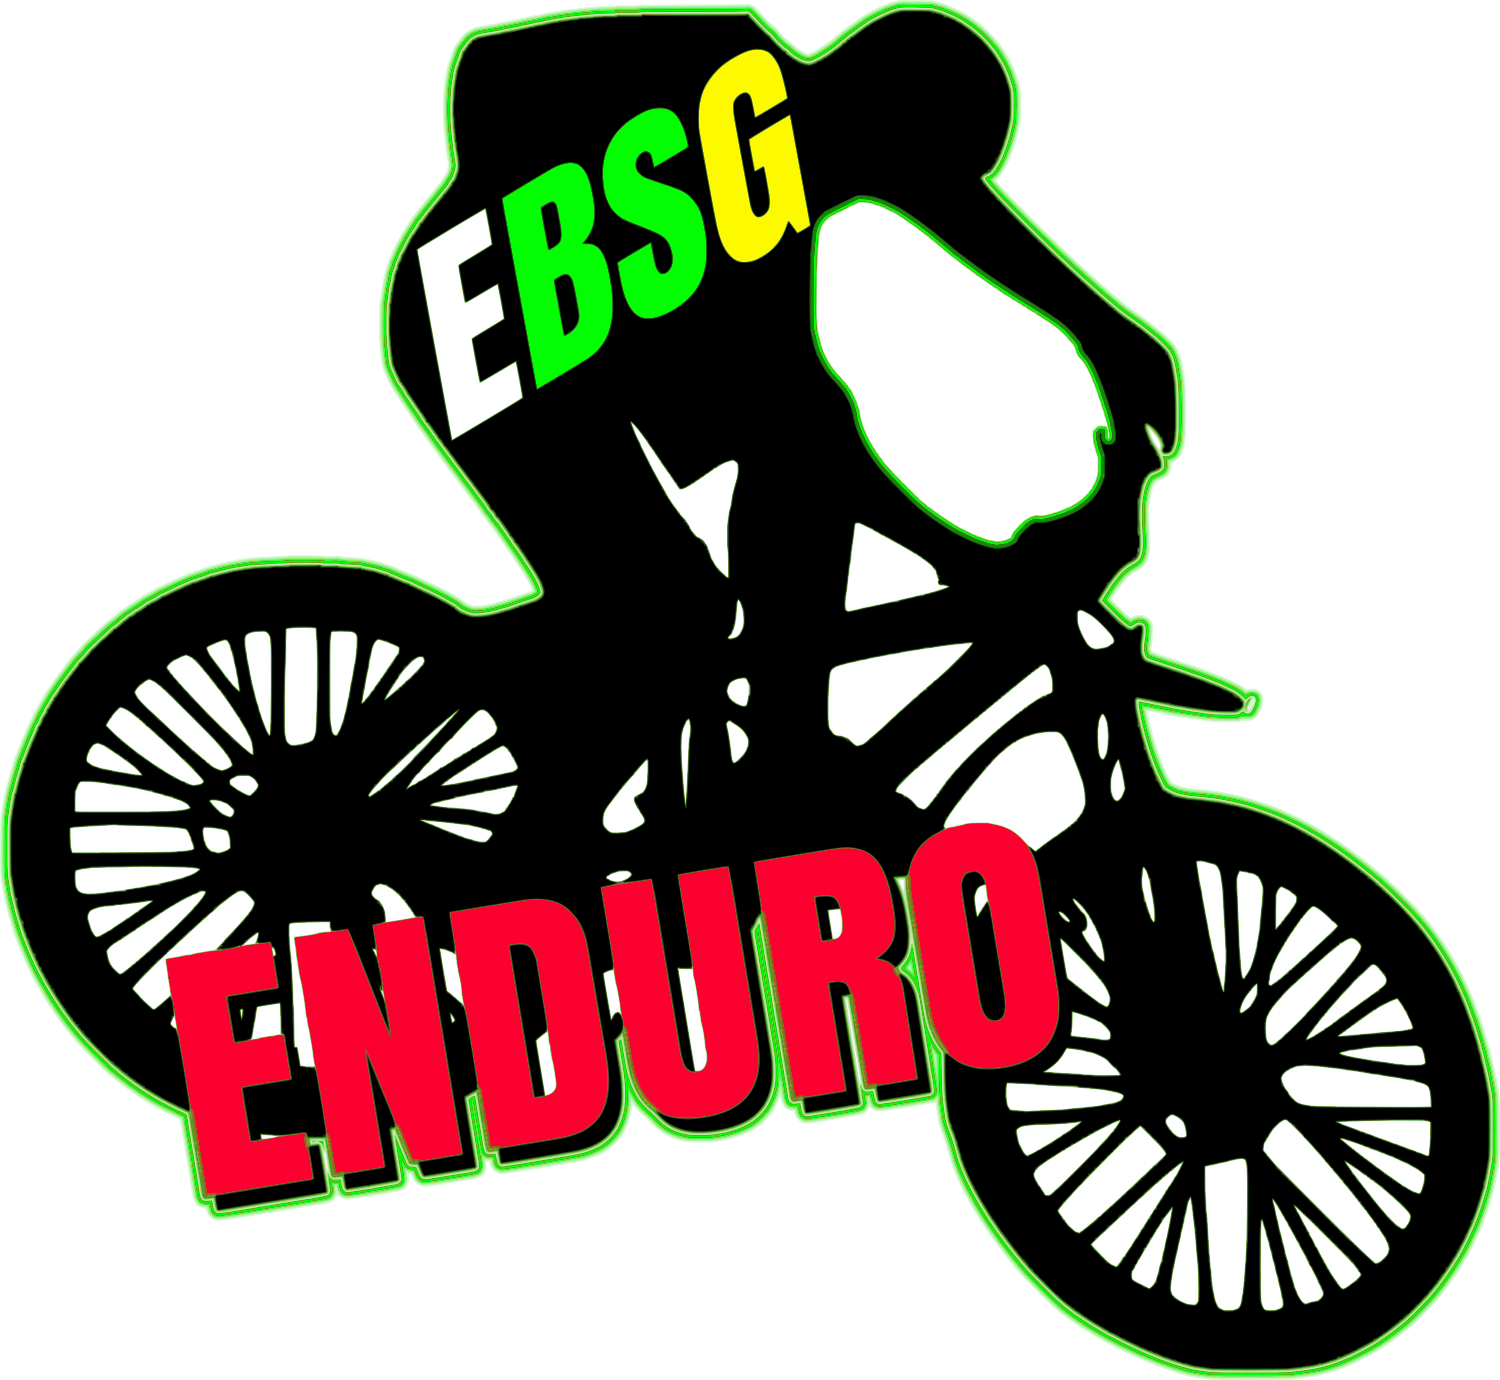 E Ben Sa Ghè Enduro & Bike